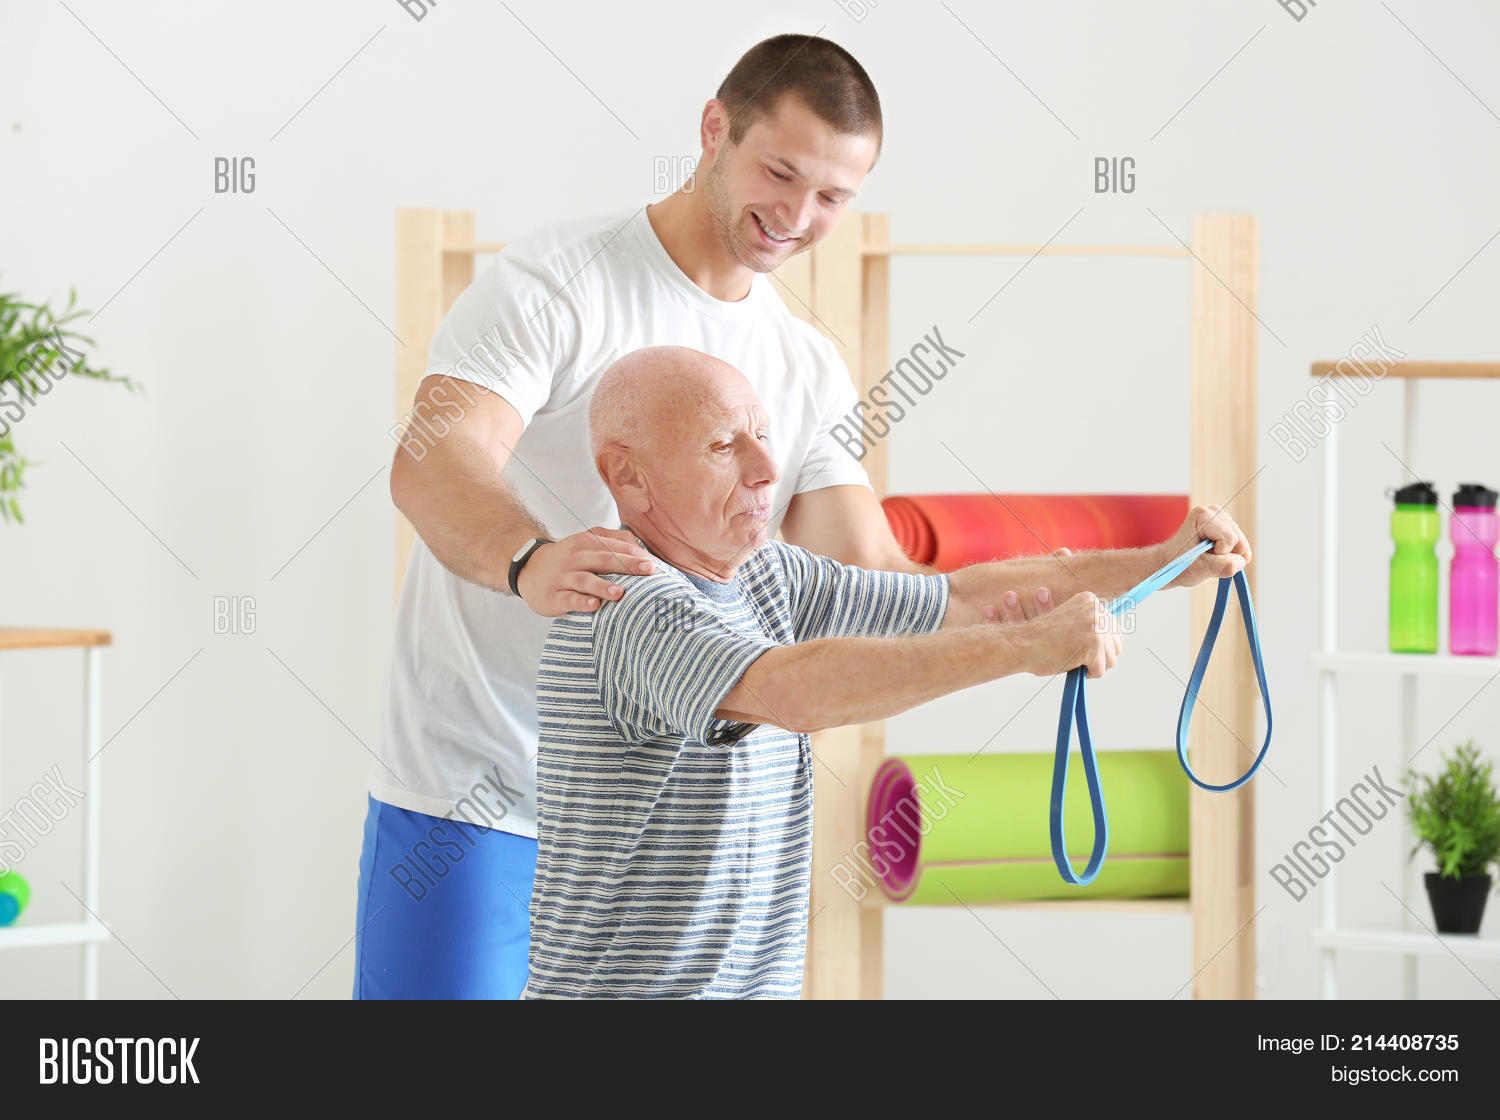 Supervision of an elderly person 5